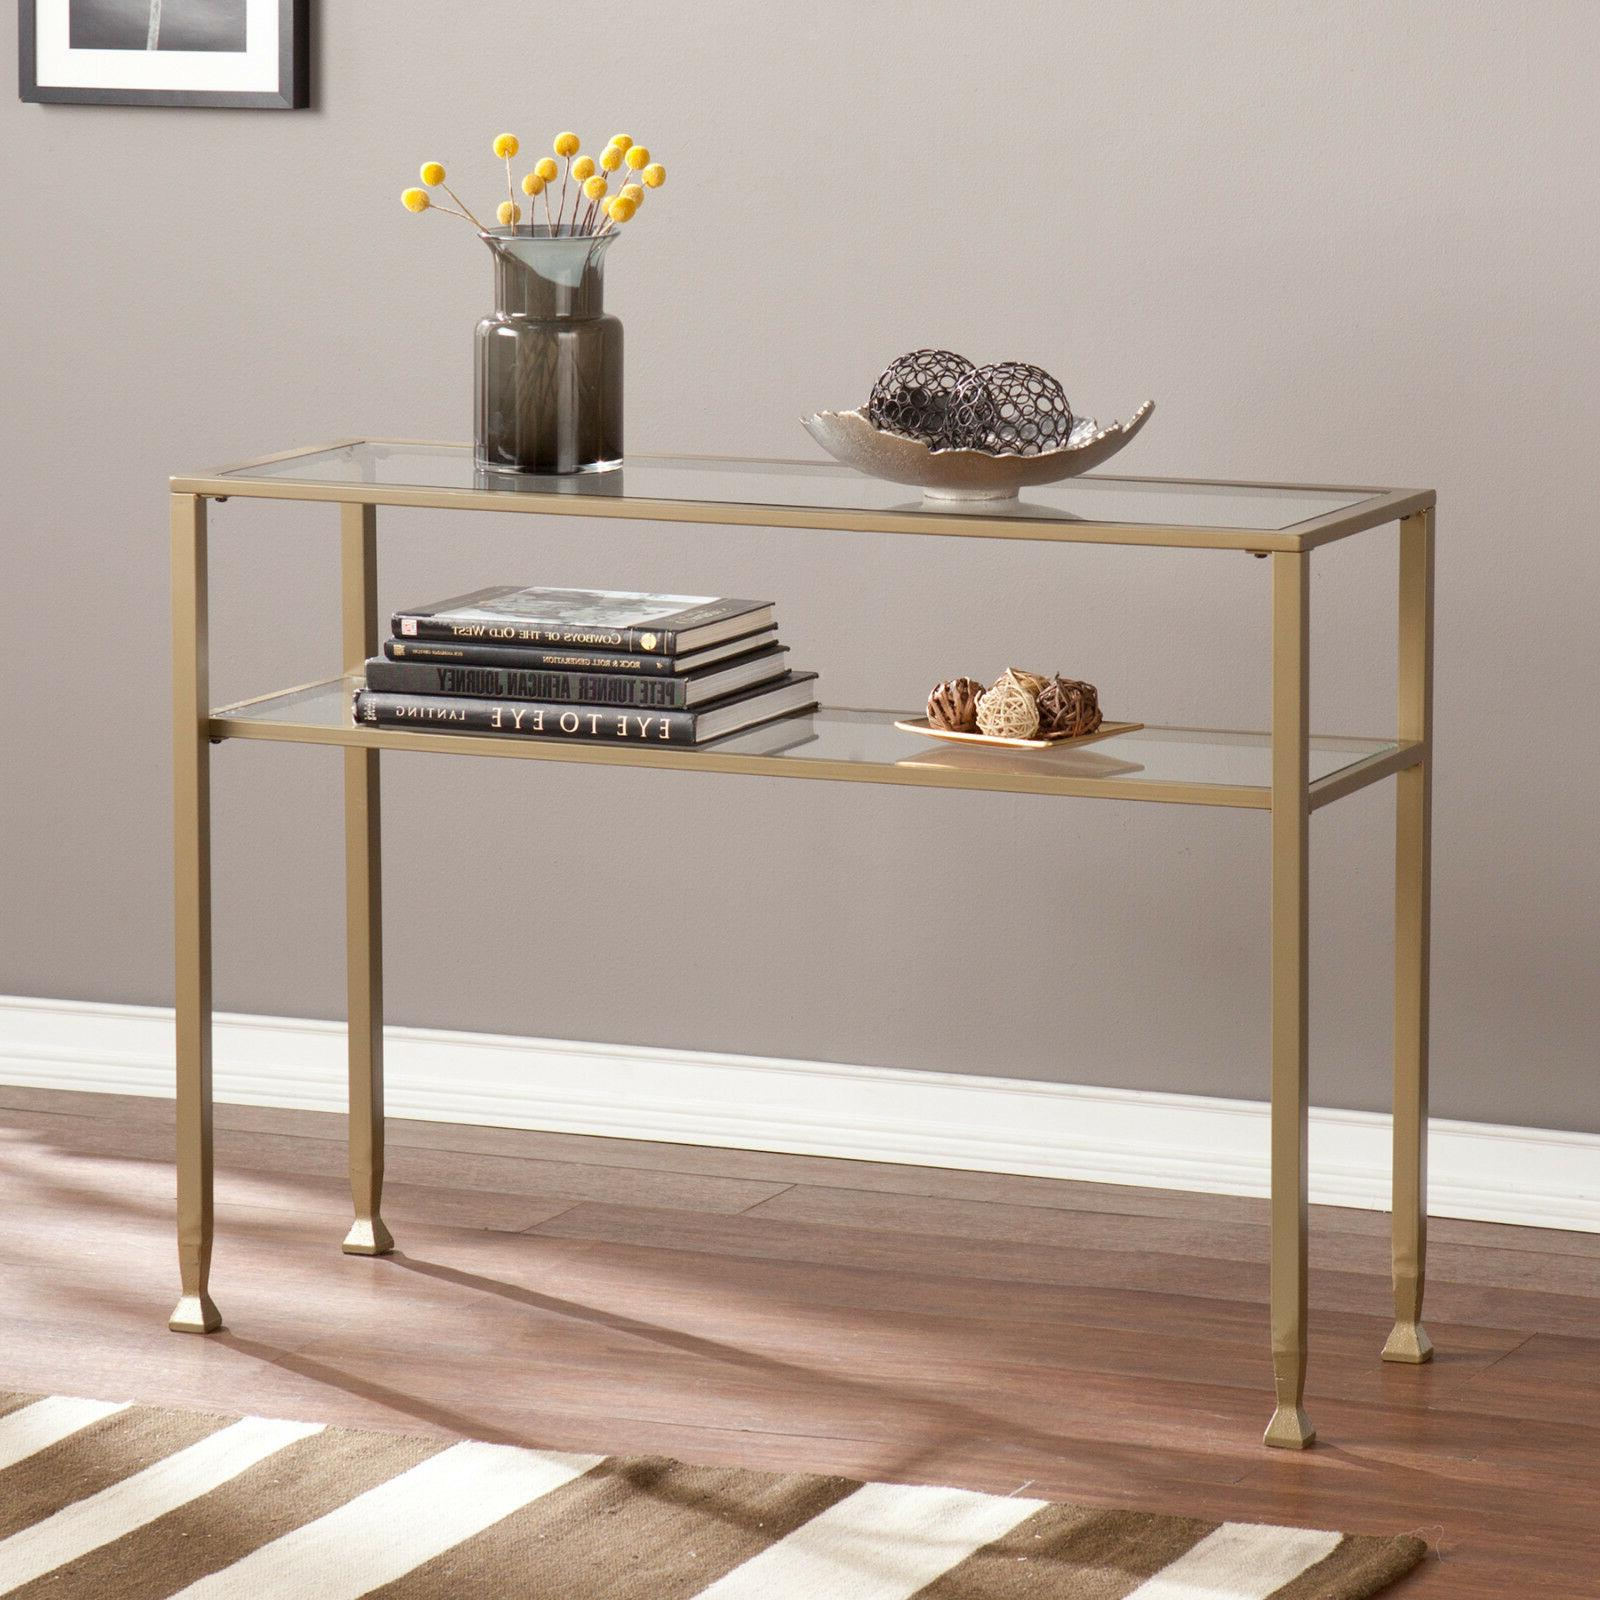 JST37573 MATTE GRAYISH GOLD METAL / GLASS CONSOLE TABLE